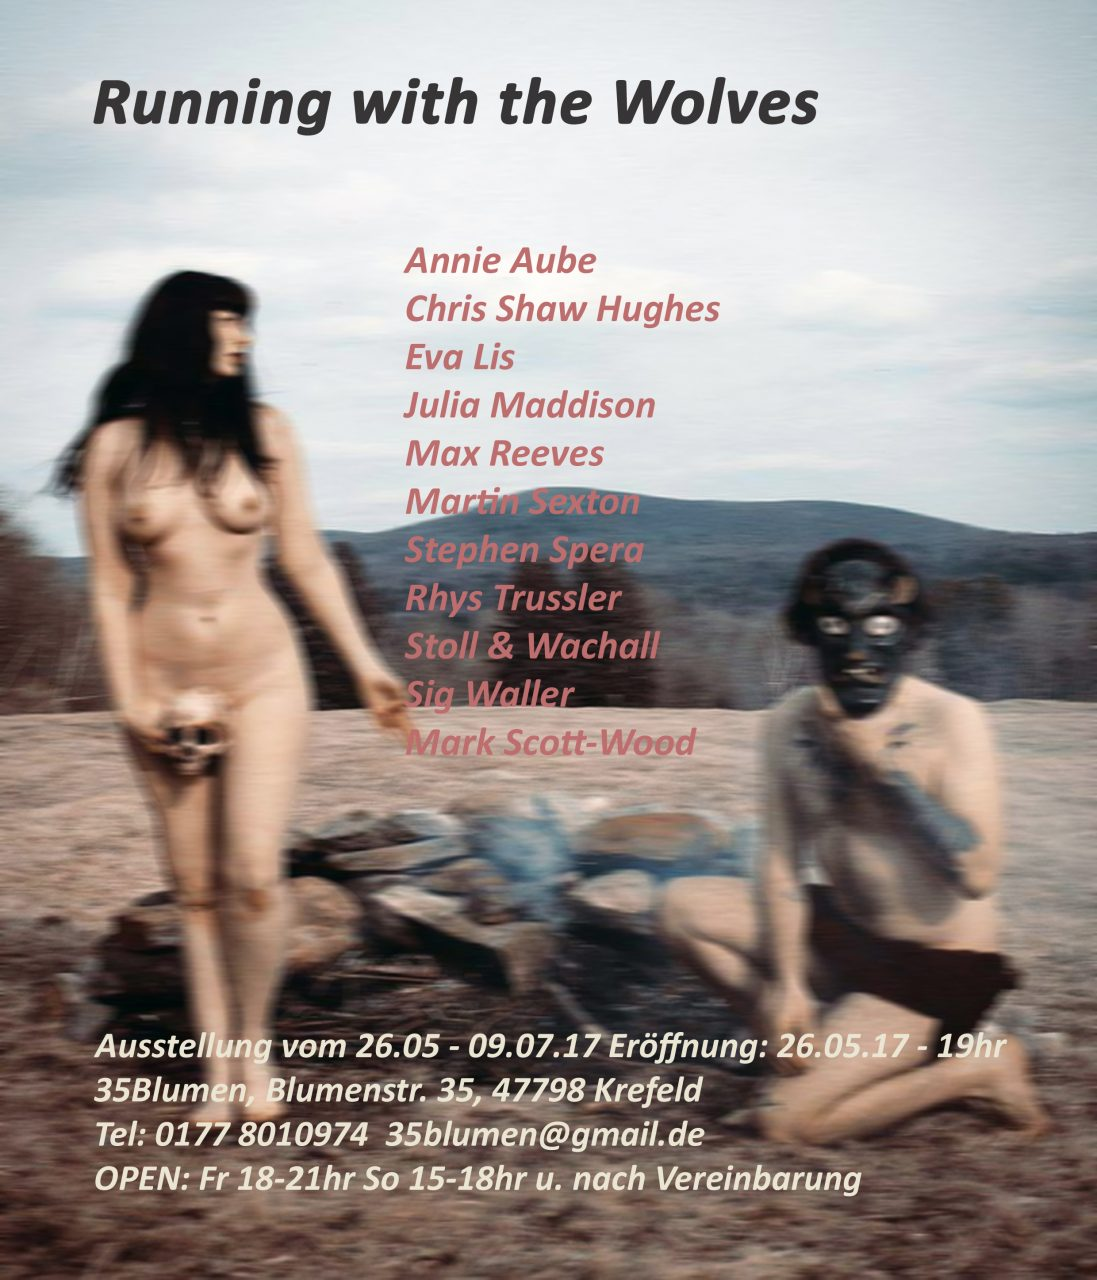 Running with the Wolves image